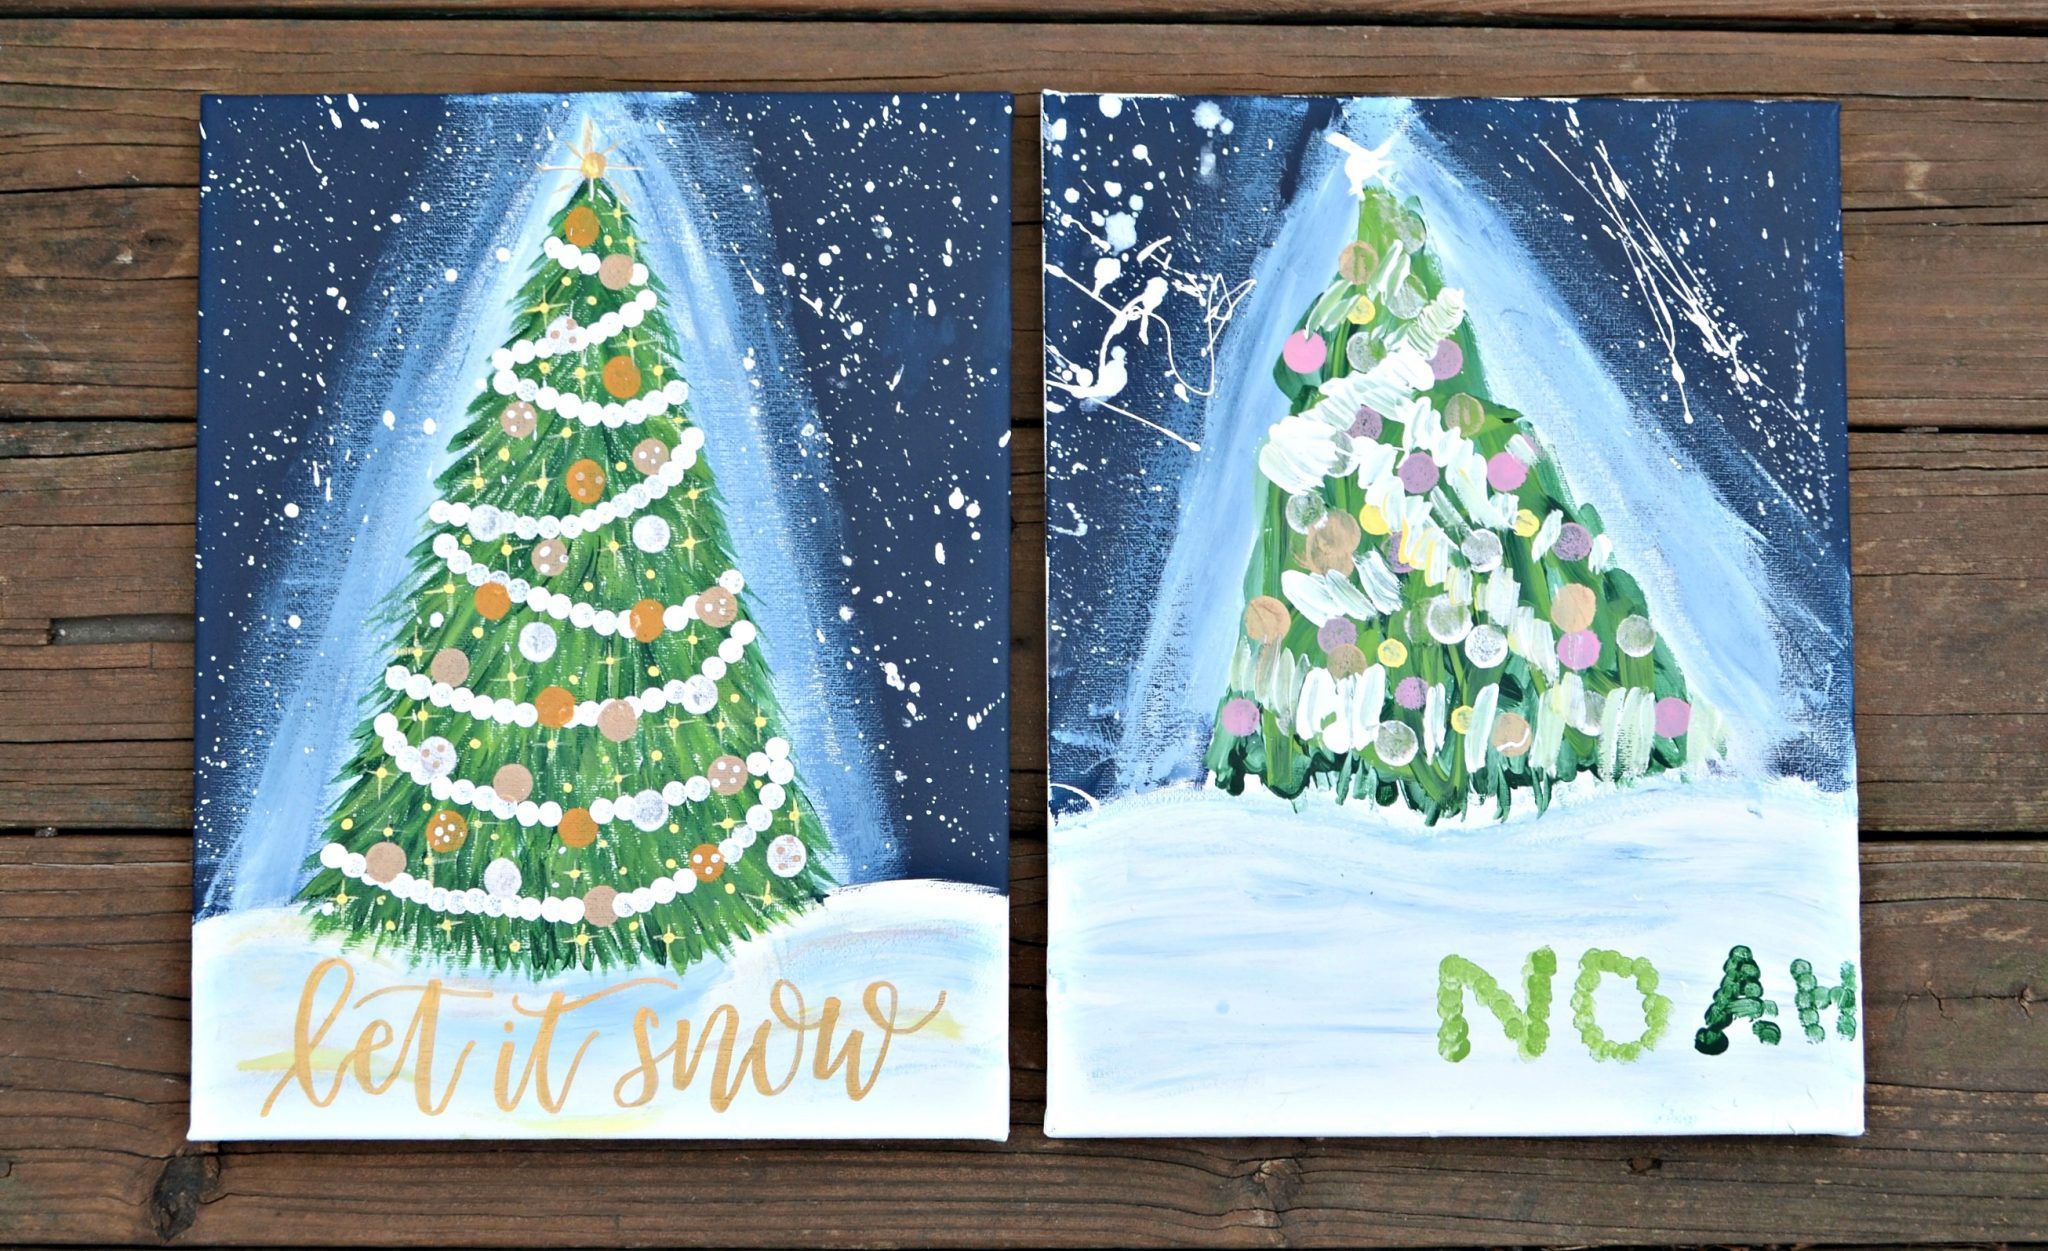 Holiday magic canvas painting amy latta creations for youcreate this holiday magic canvas painting its easier than you think and you can create it with your kids your friends or all by yourself solutioingenieria Gallery